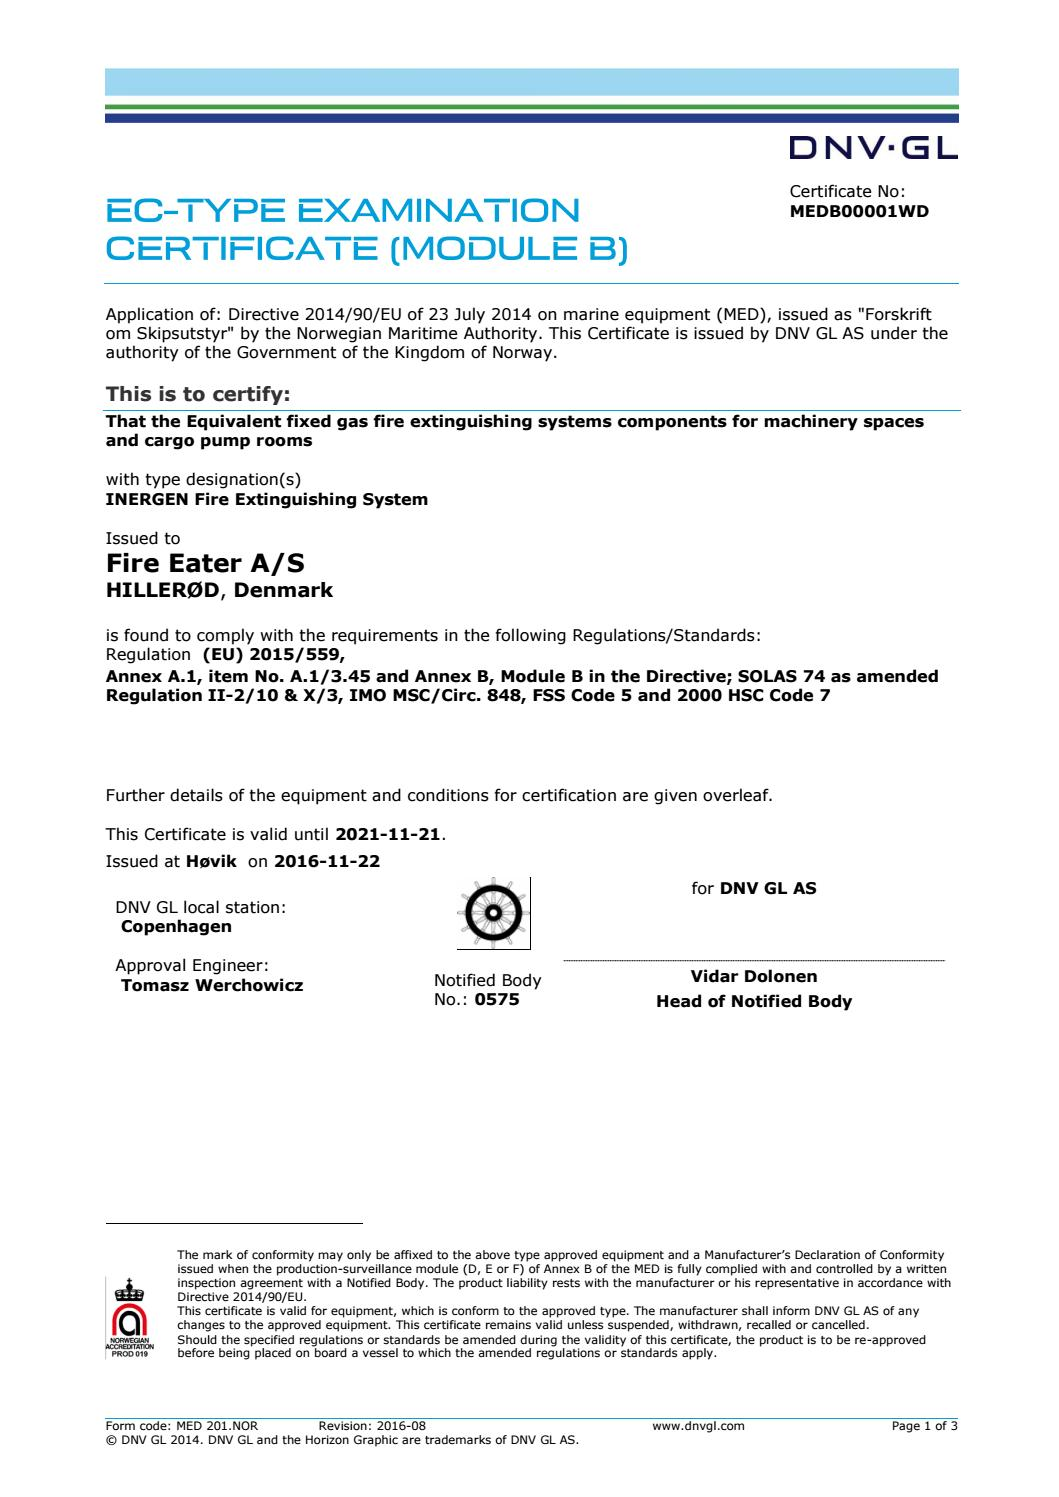 Dnv certificate fire eater by fire eater issuu 1betcityfo Choice Image